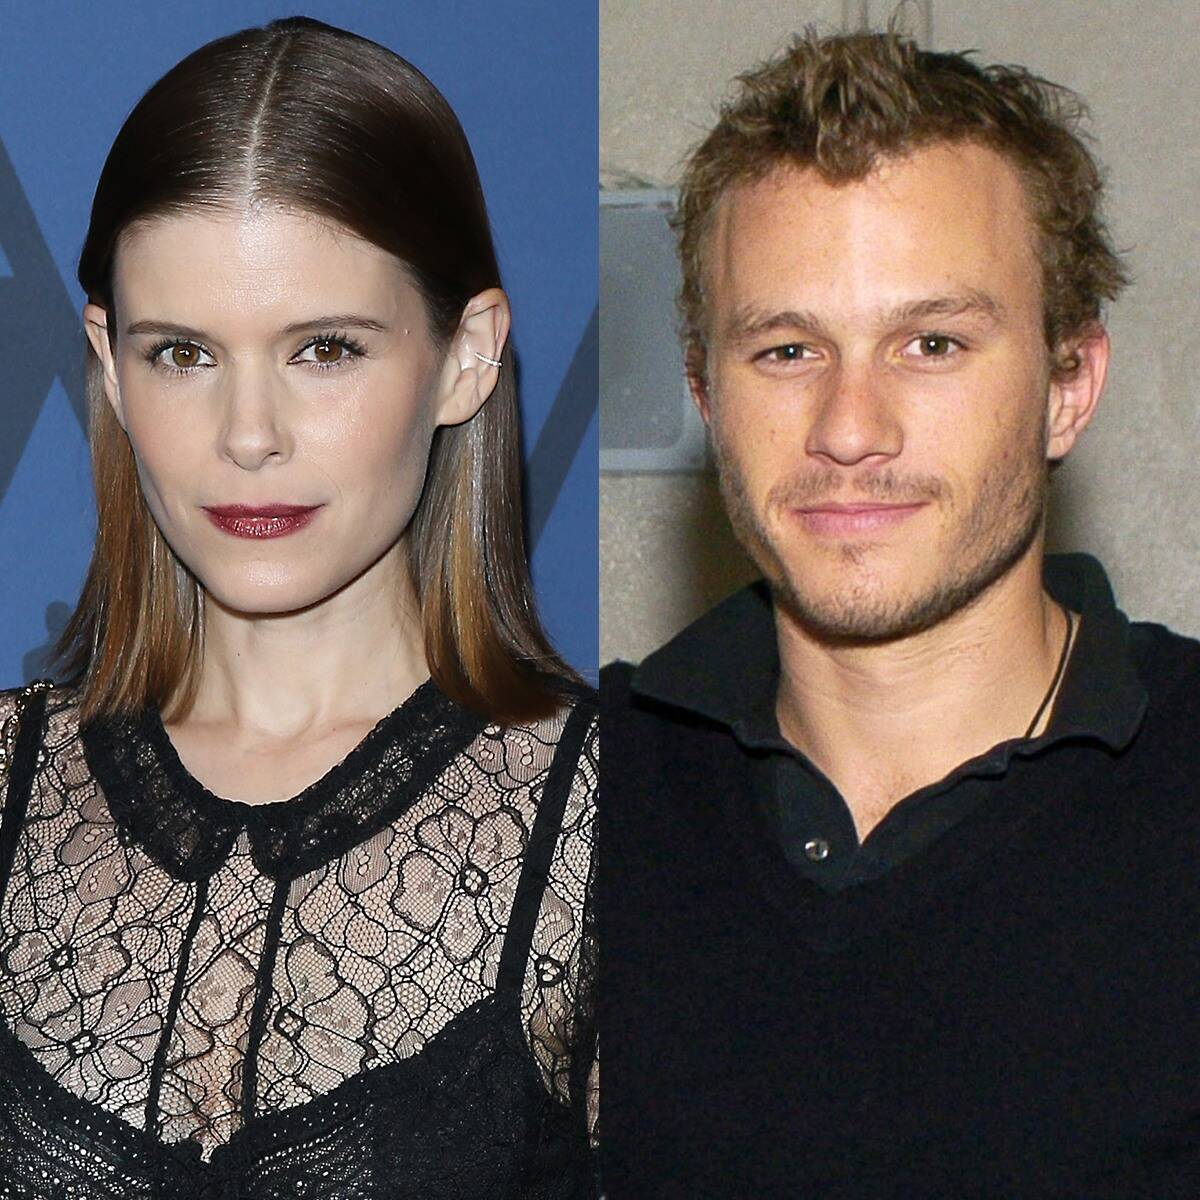 Kate Mara Opens Up About Her Experience Working With Heath Ledger On 'Brokeback Mountain' – Says He Took Her 'Under His Wing'